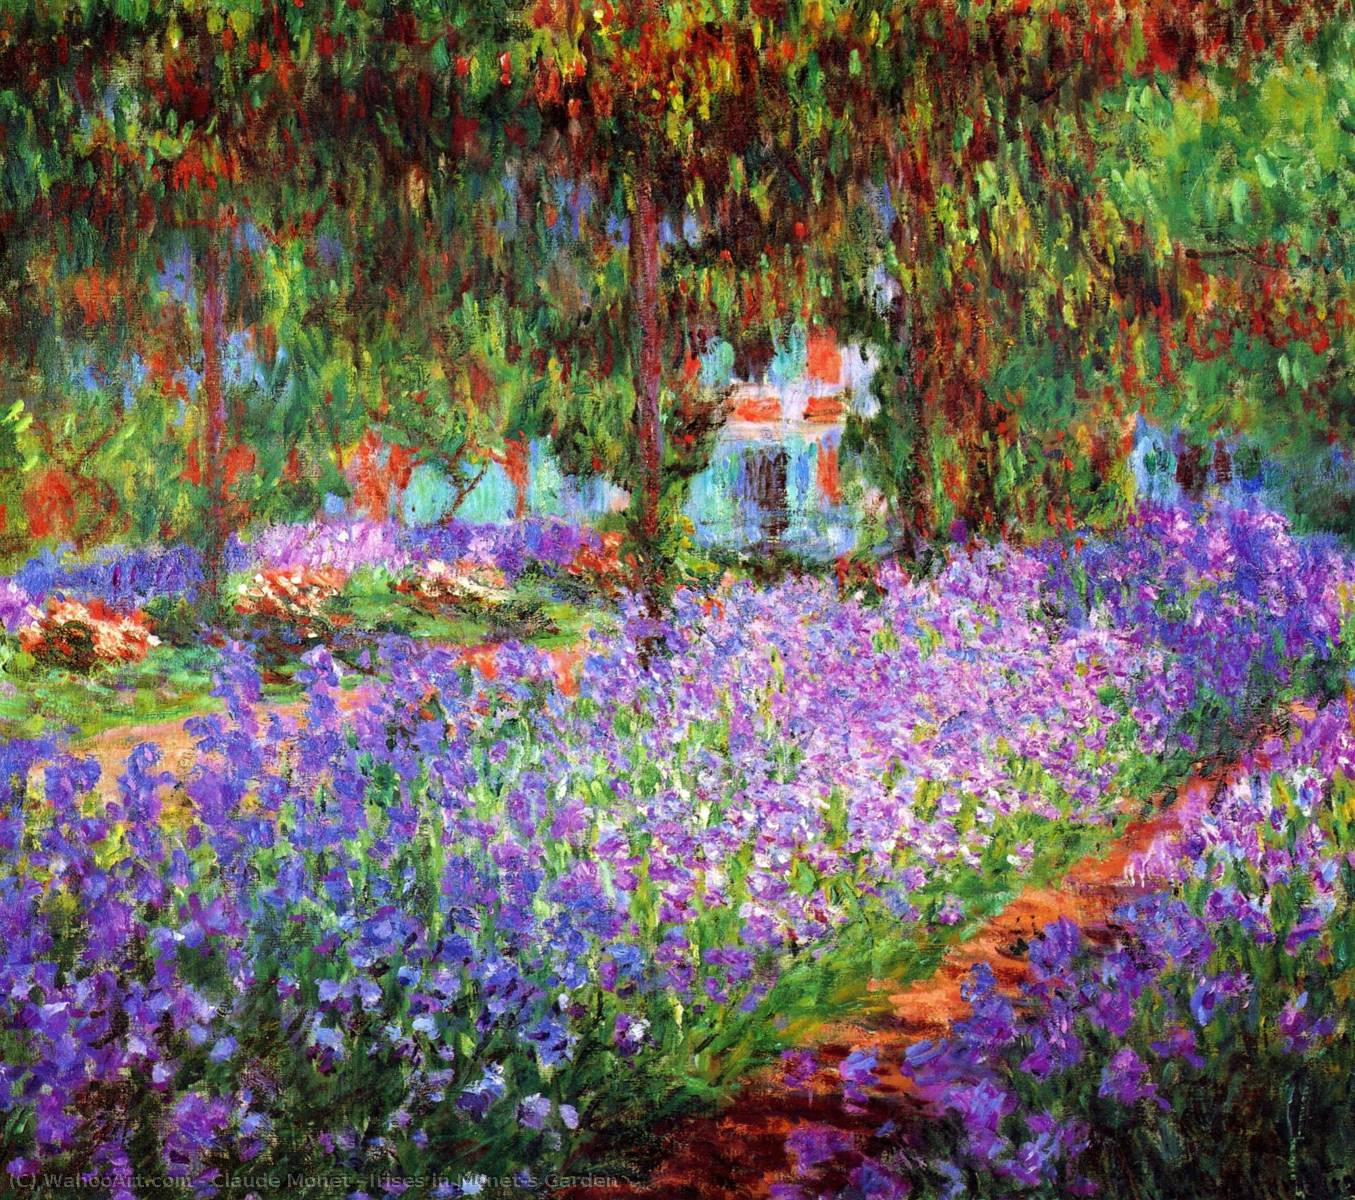 iris in de Monet jardín, 1900 de Claude Monet (1840-1926, France)